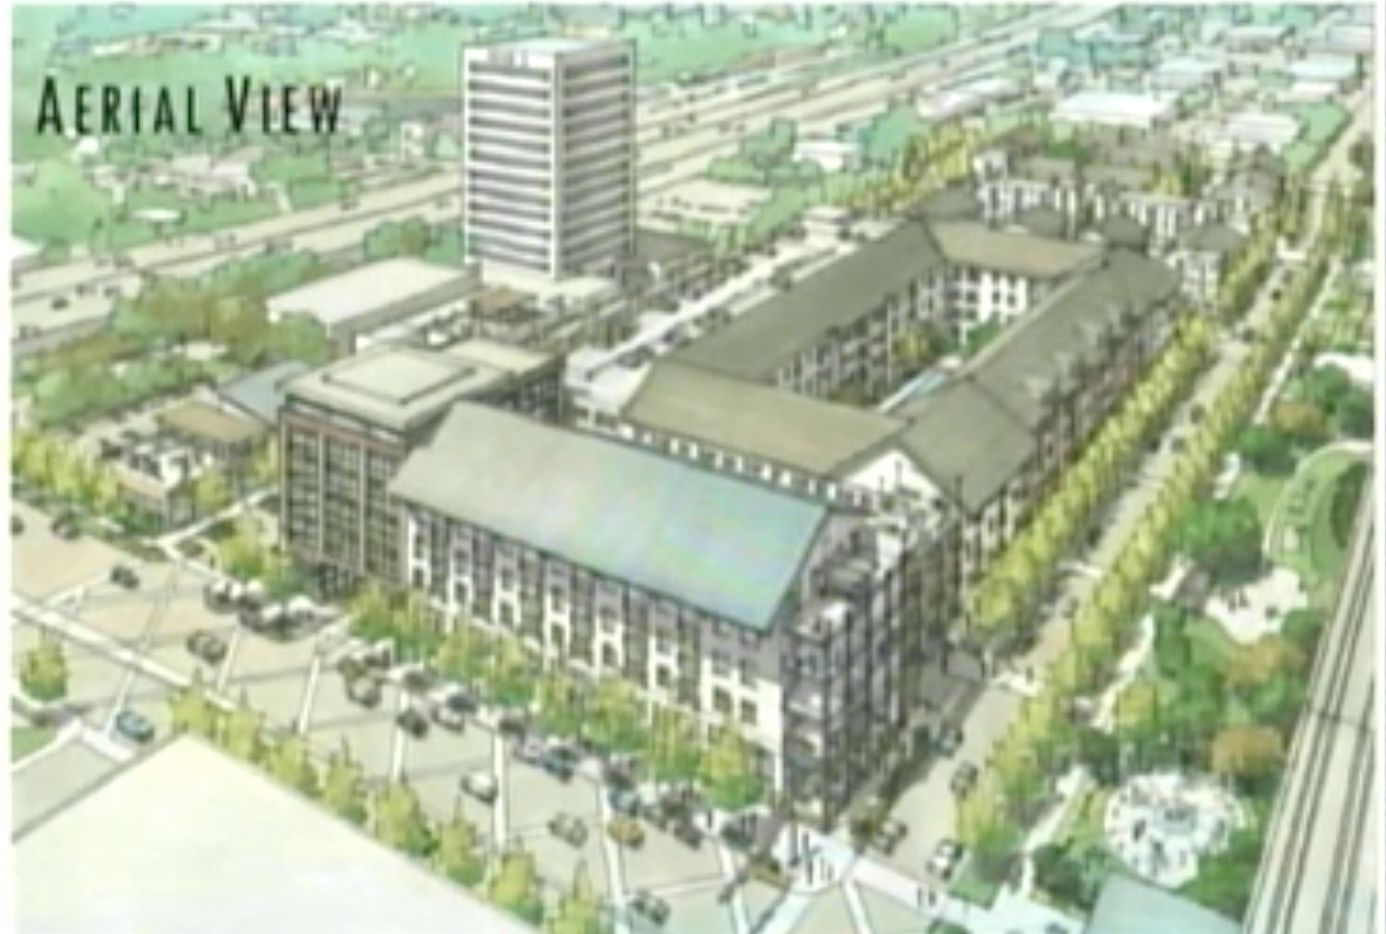 The planned Town Central development includes retail, apartments and townhomes.